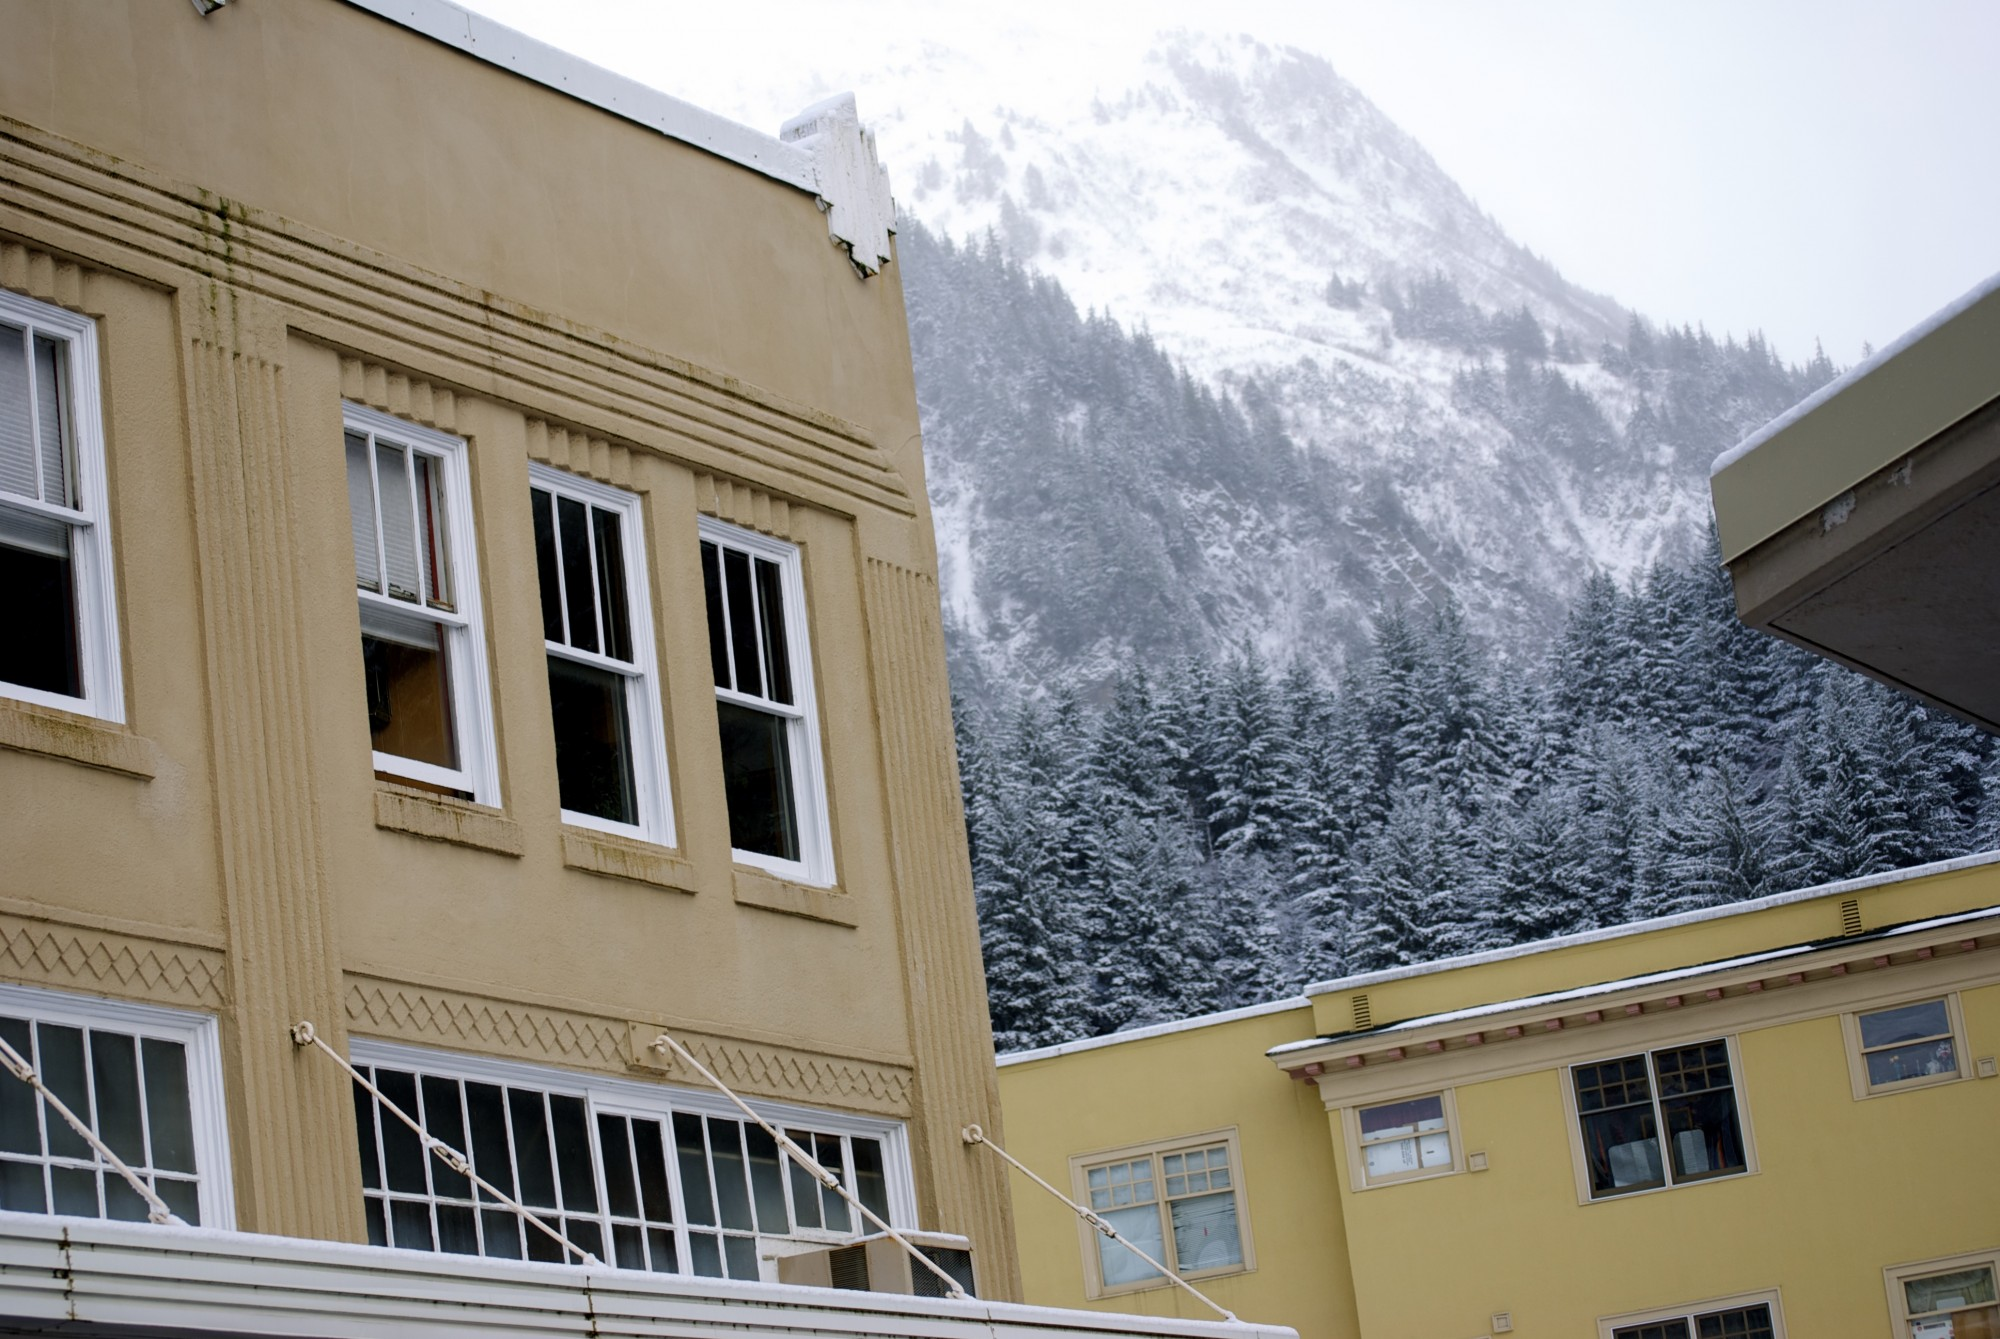 Mountains seem to rise from the backyard of Juneau, Alaska's capital city.